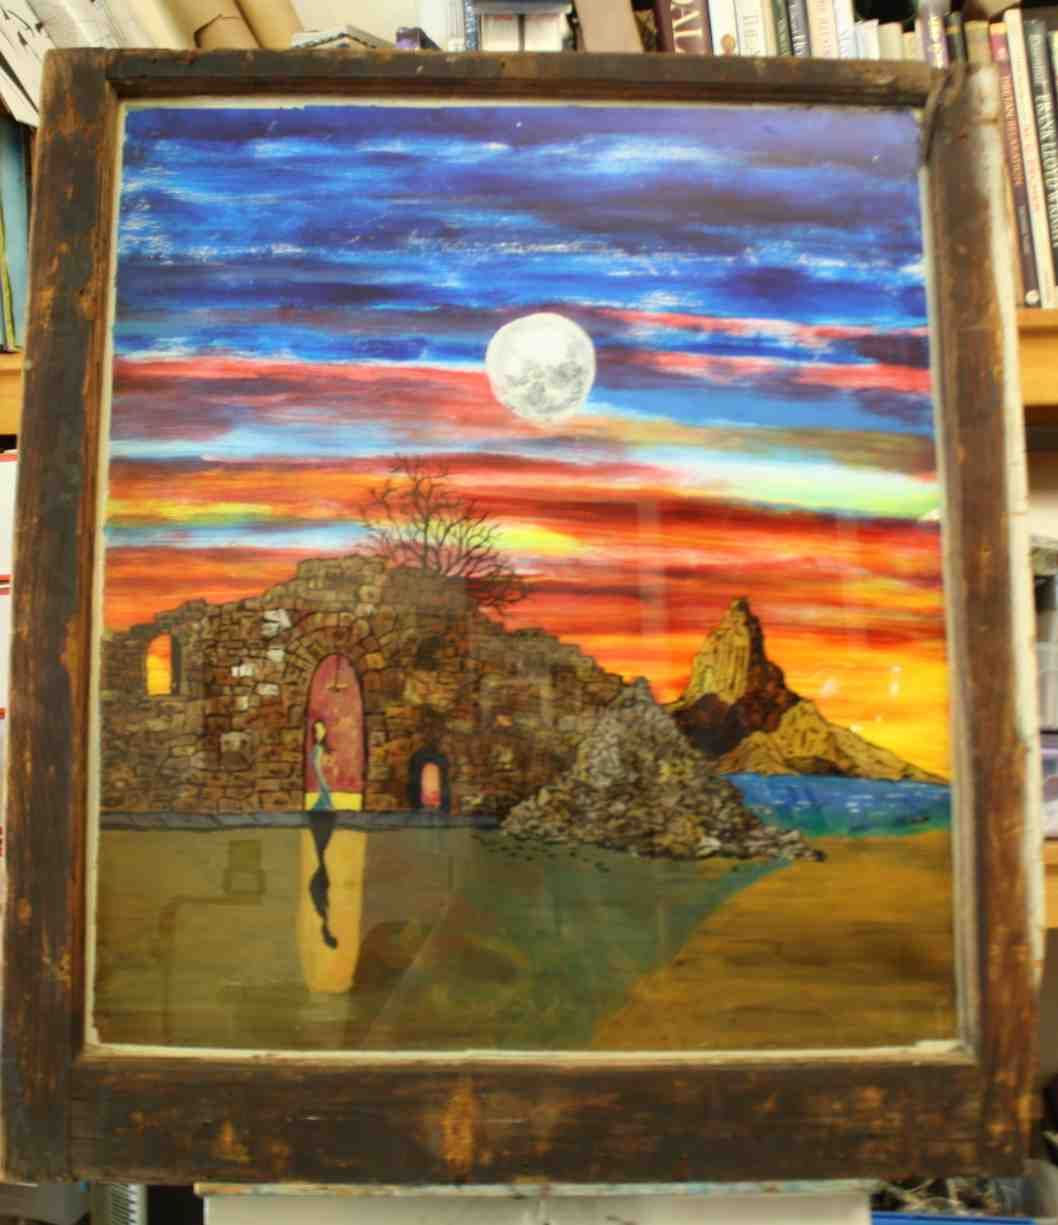 At The End Of The Journey Acrylic Reverse Painting On Glass